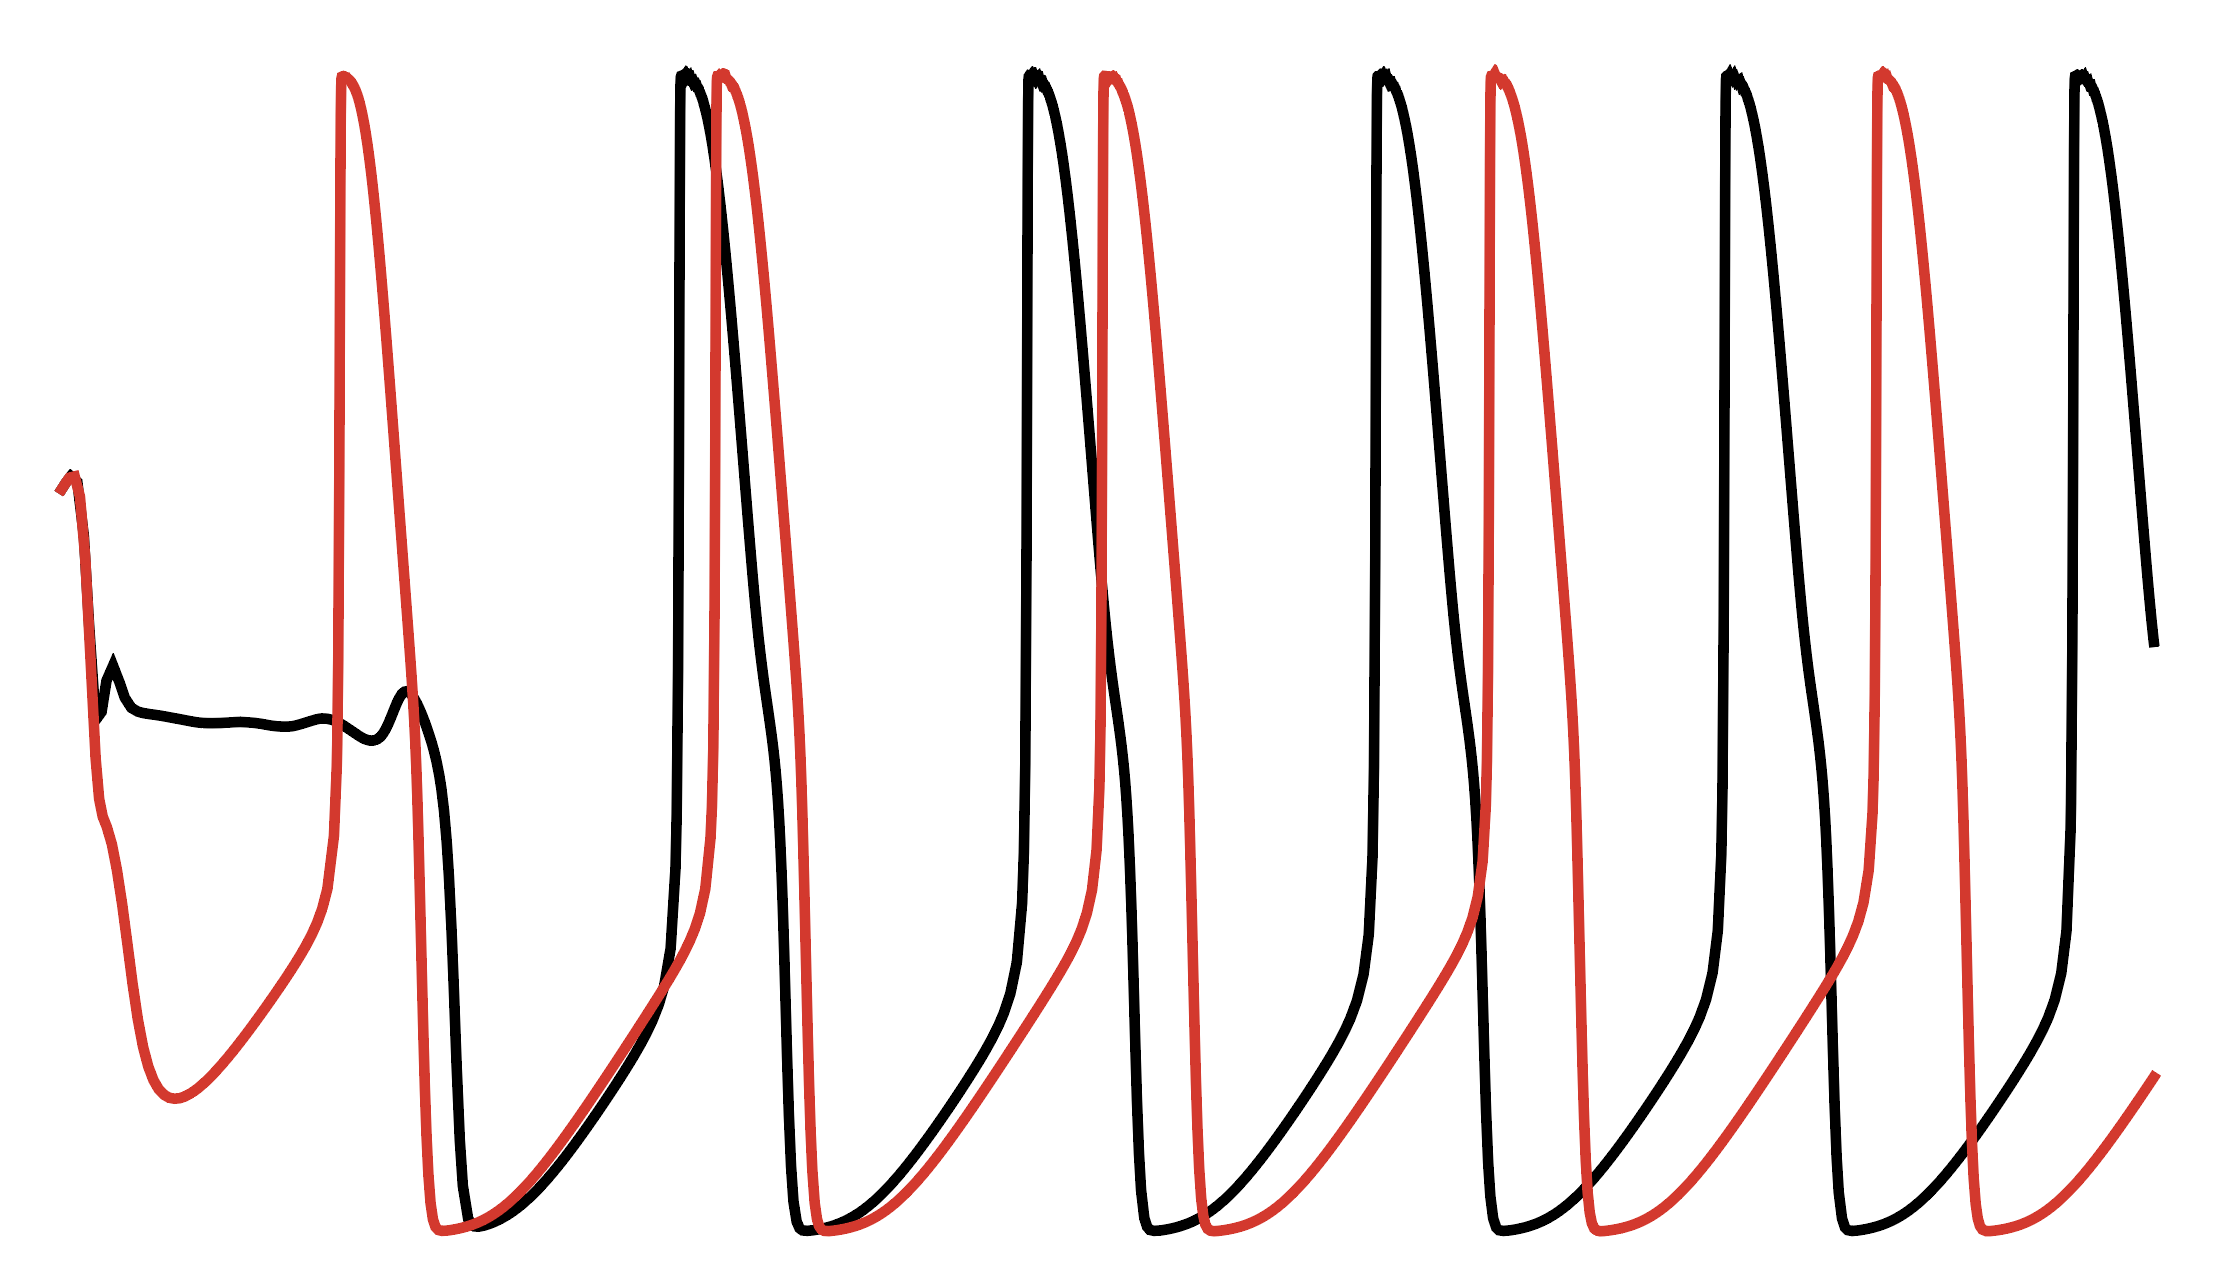 Simulating the effects of channel abnormalities on neuron dynamics [code] - This code implements the patch-clamp recordings made above in a Hodgkin-Huxley model to simulate its effects on neuronal function.Github: SCN1A Hodgkin Huxley Model